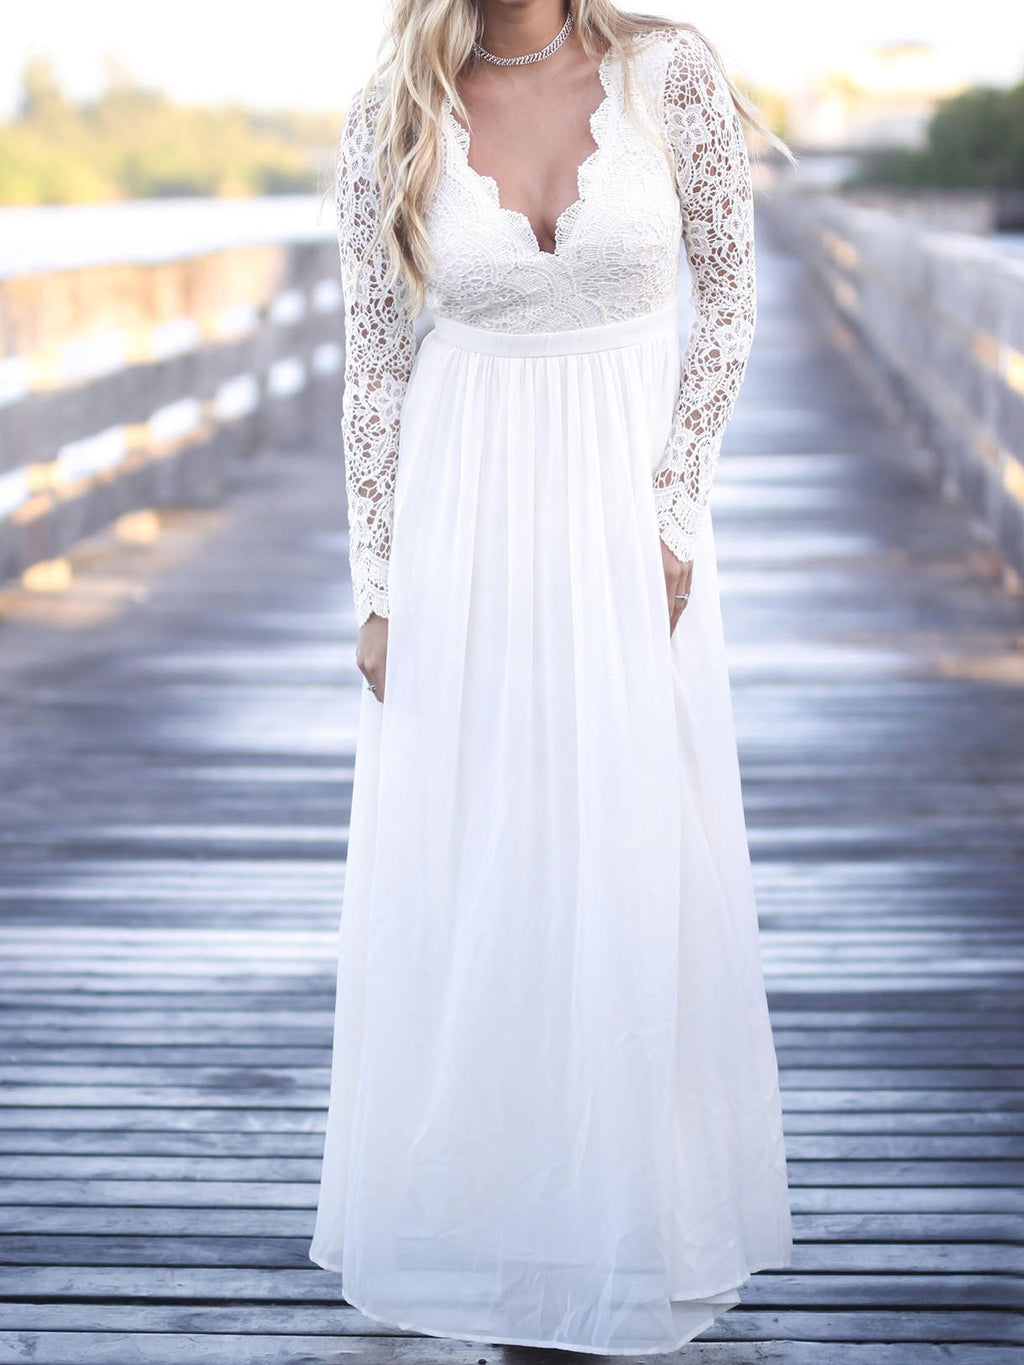 BohoProm Wedding Dresses Pure Chiffon & Lace V-neck Neckline Long Sleeves A-line Wedding Dresses WD114